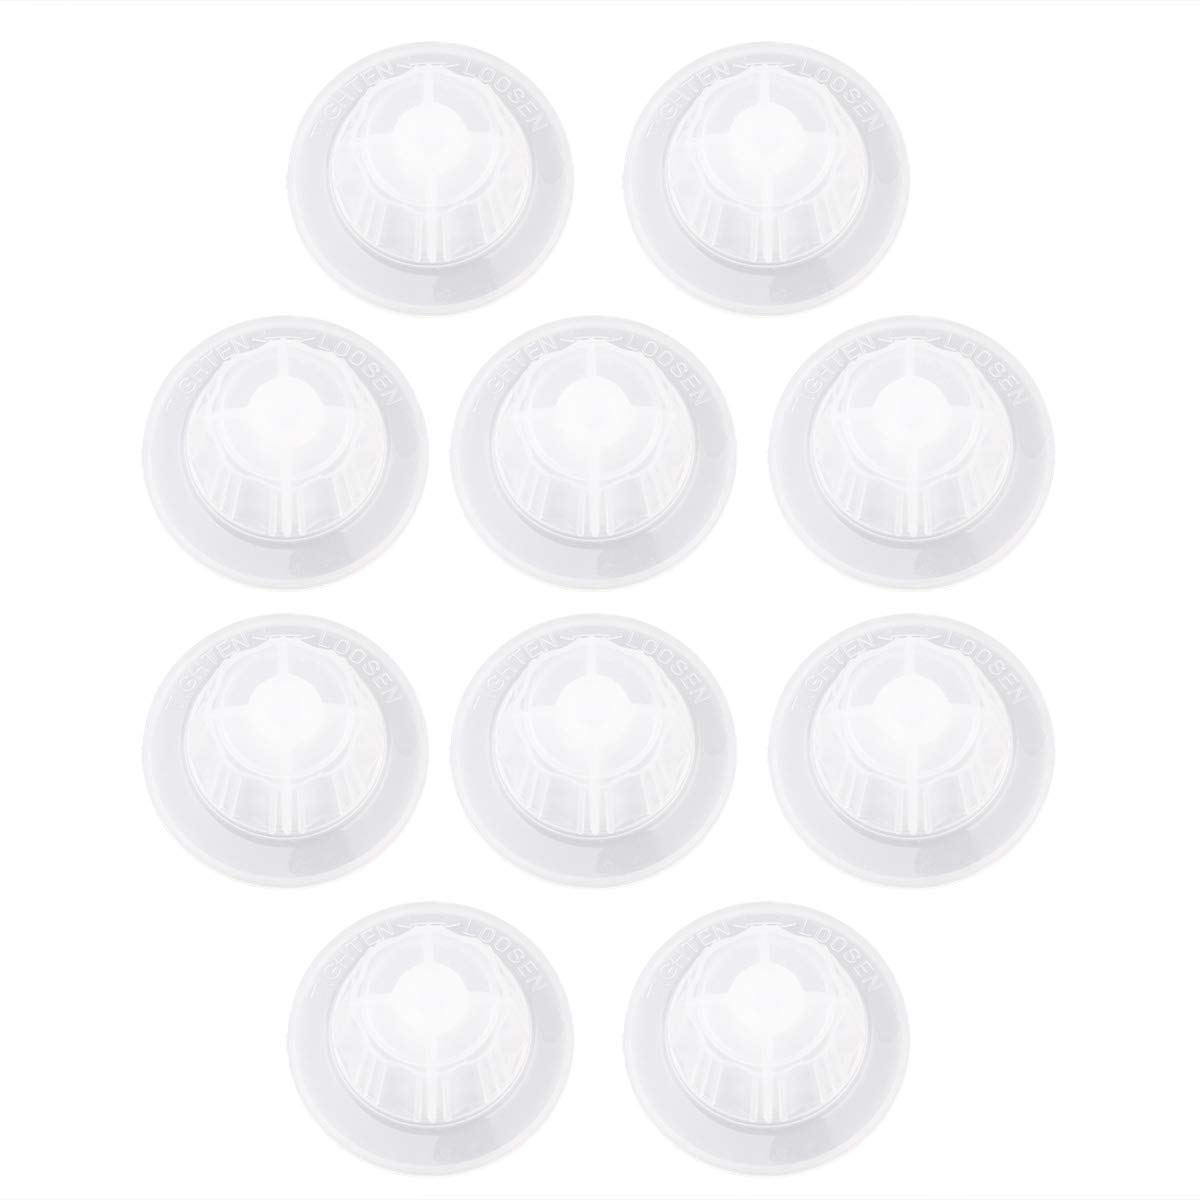 CHICTRY Plastic Fan Blade Screw Fixing Parts Nut Covers for Household Standing Pedestal Fan Table Fanner General Accessories 10Pcs One Size